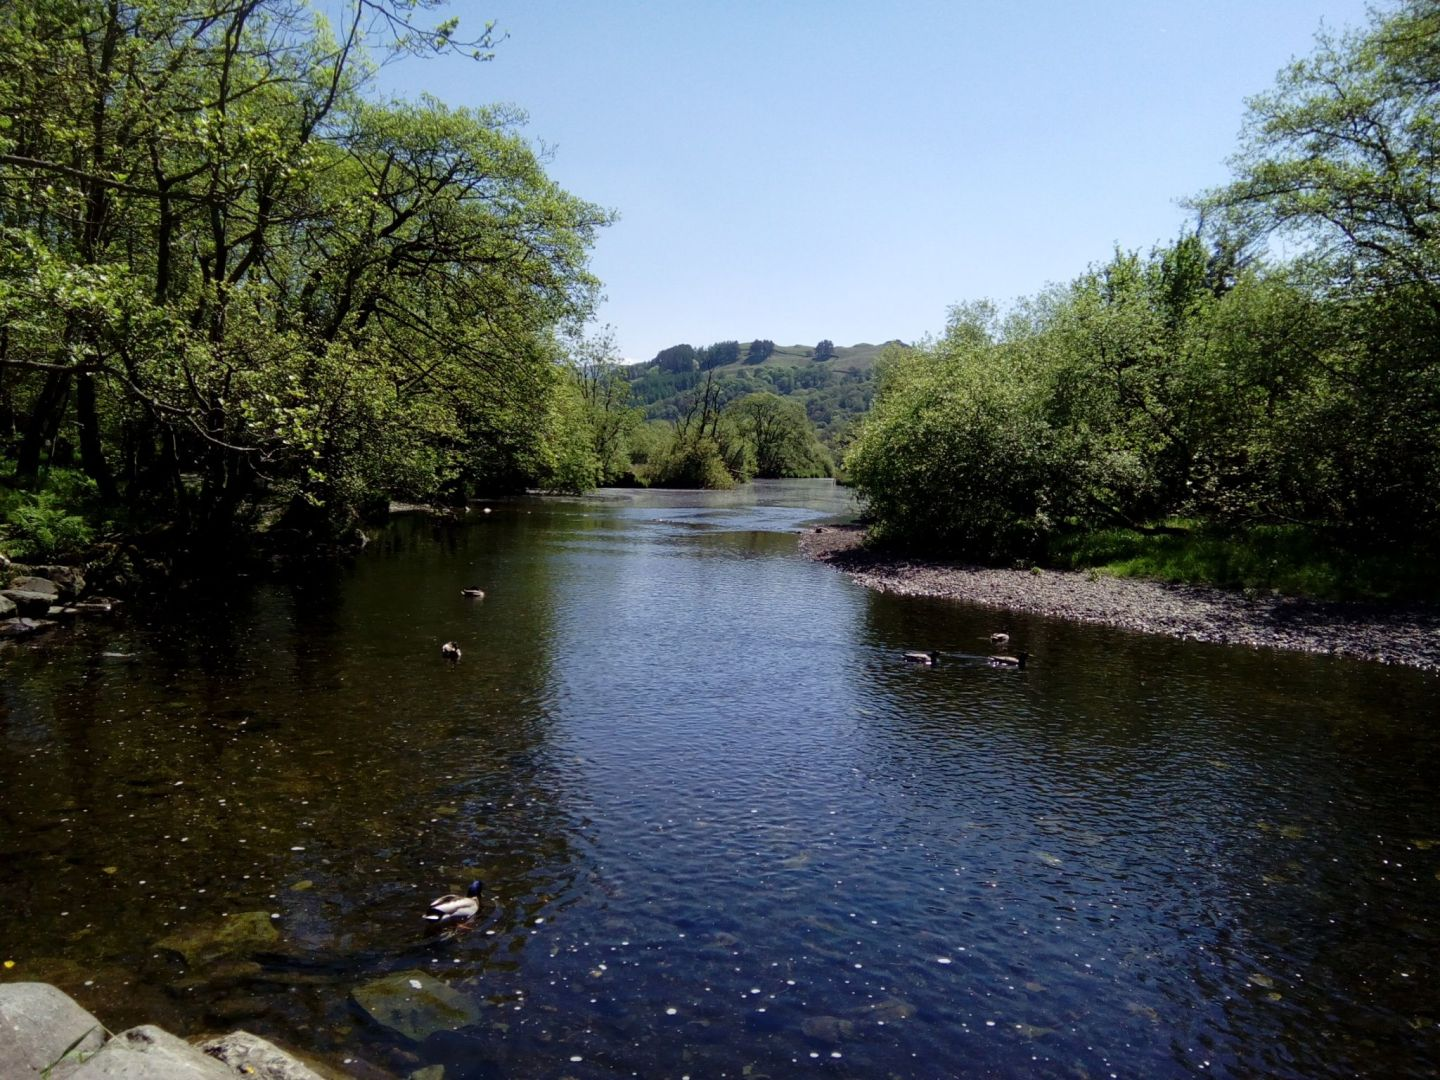 Rydal to Grasmere